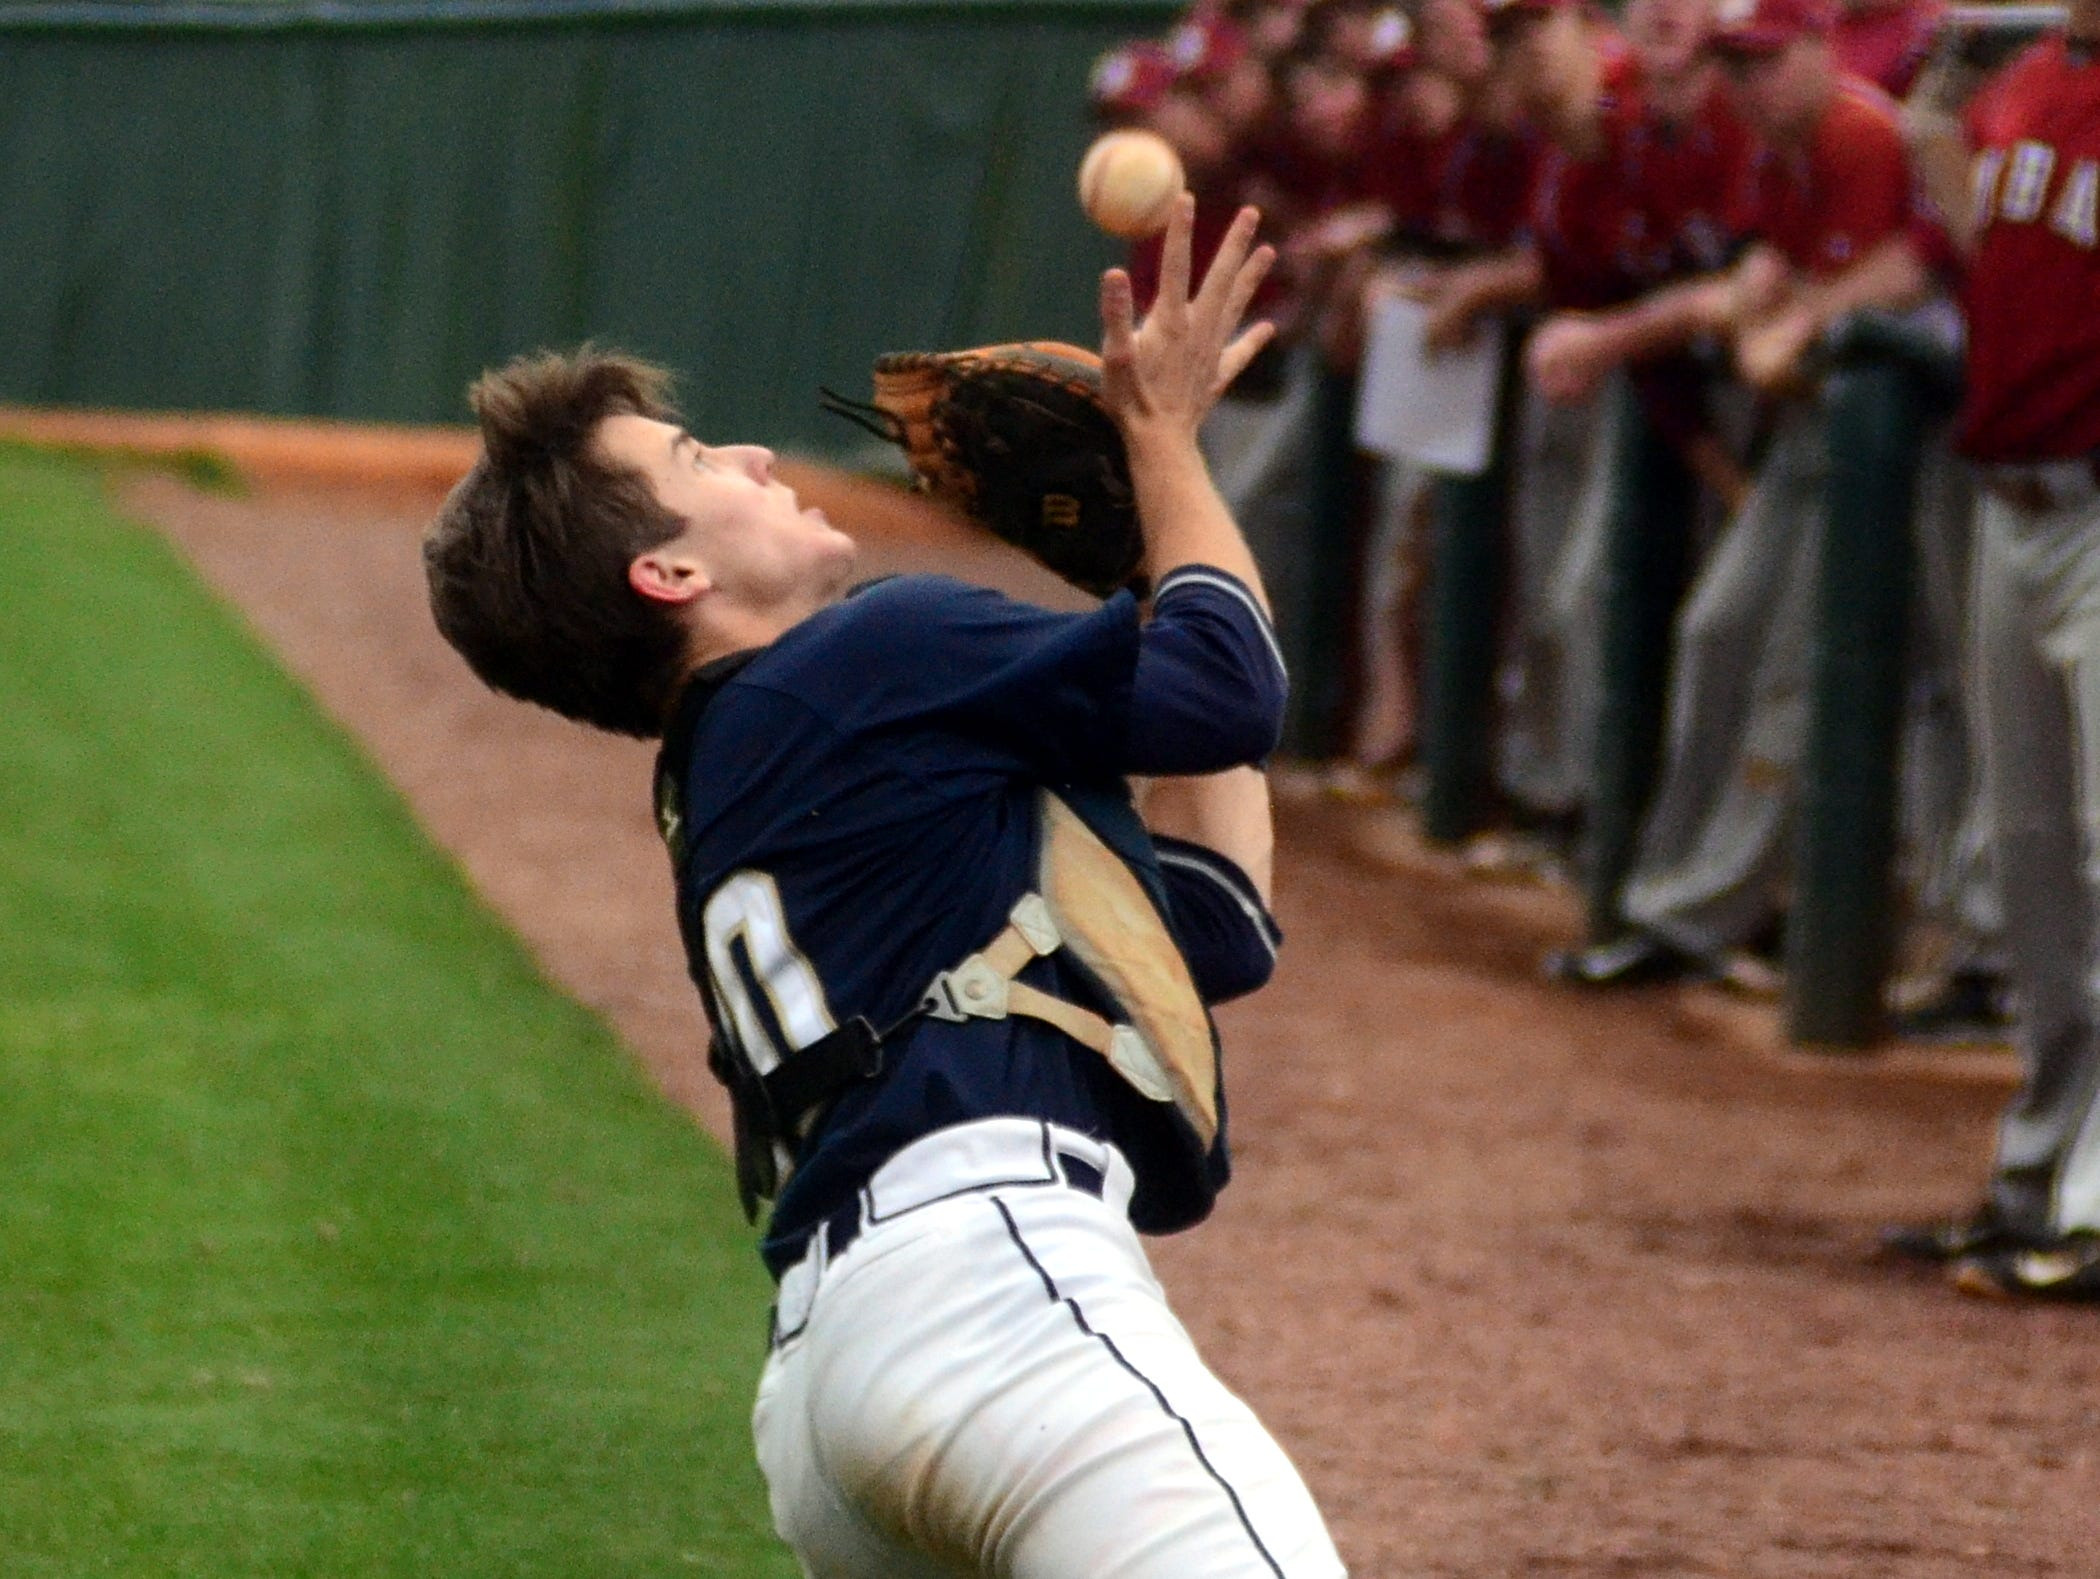 Pope John Paul II High junior catcher Jack Shuttleworth dives to catch a foul ball during third-inning action.